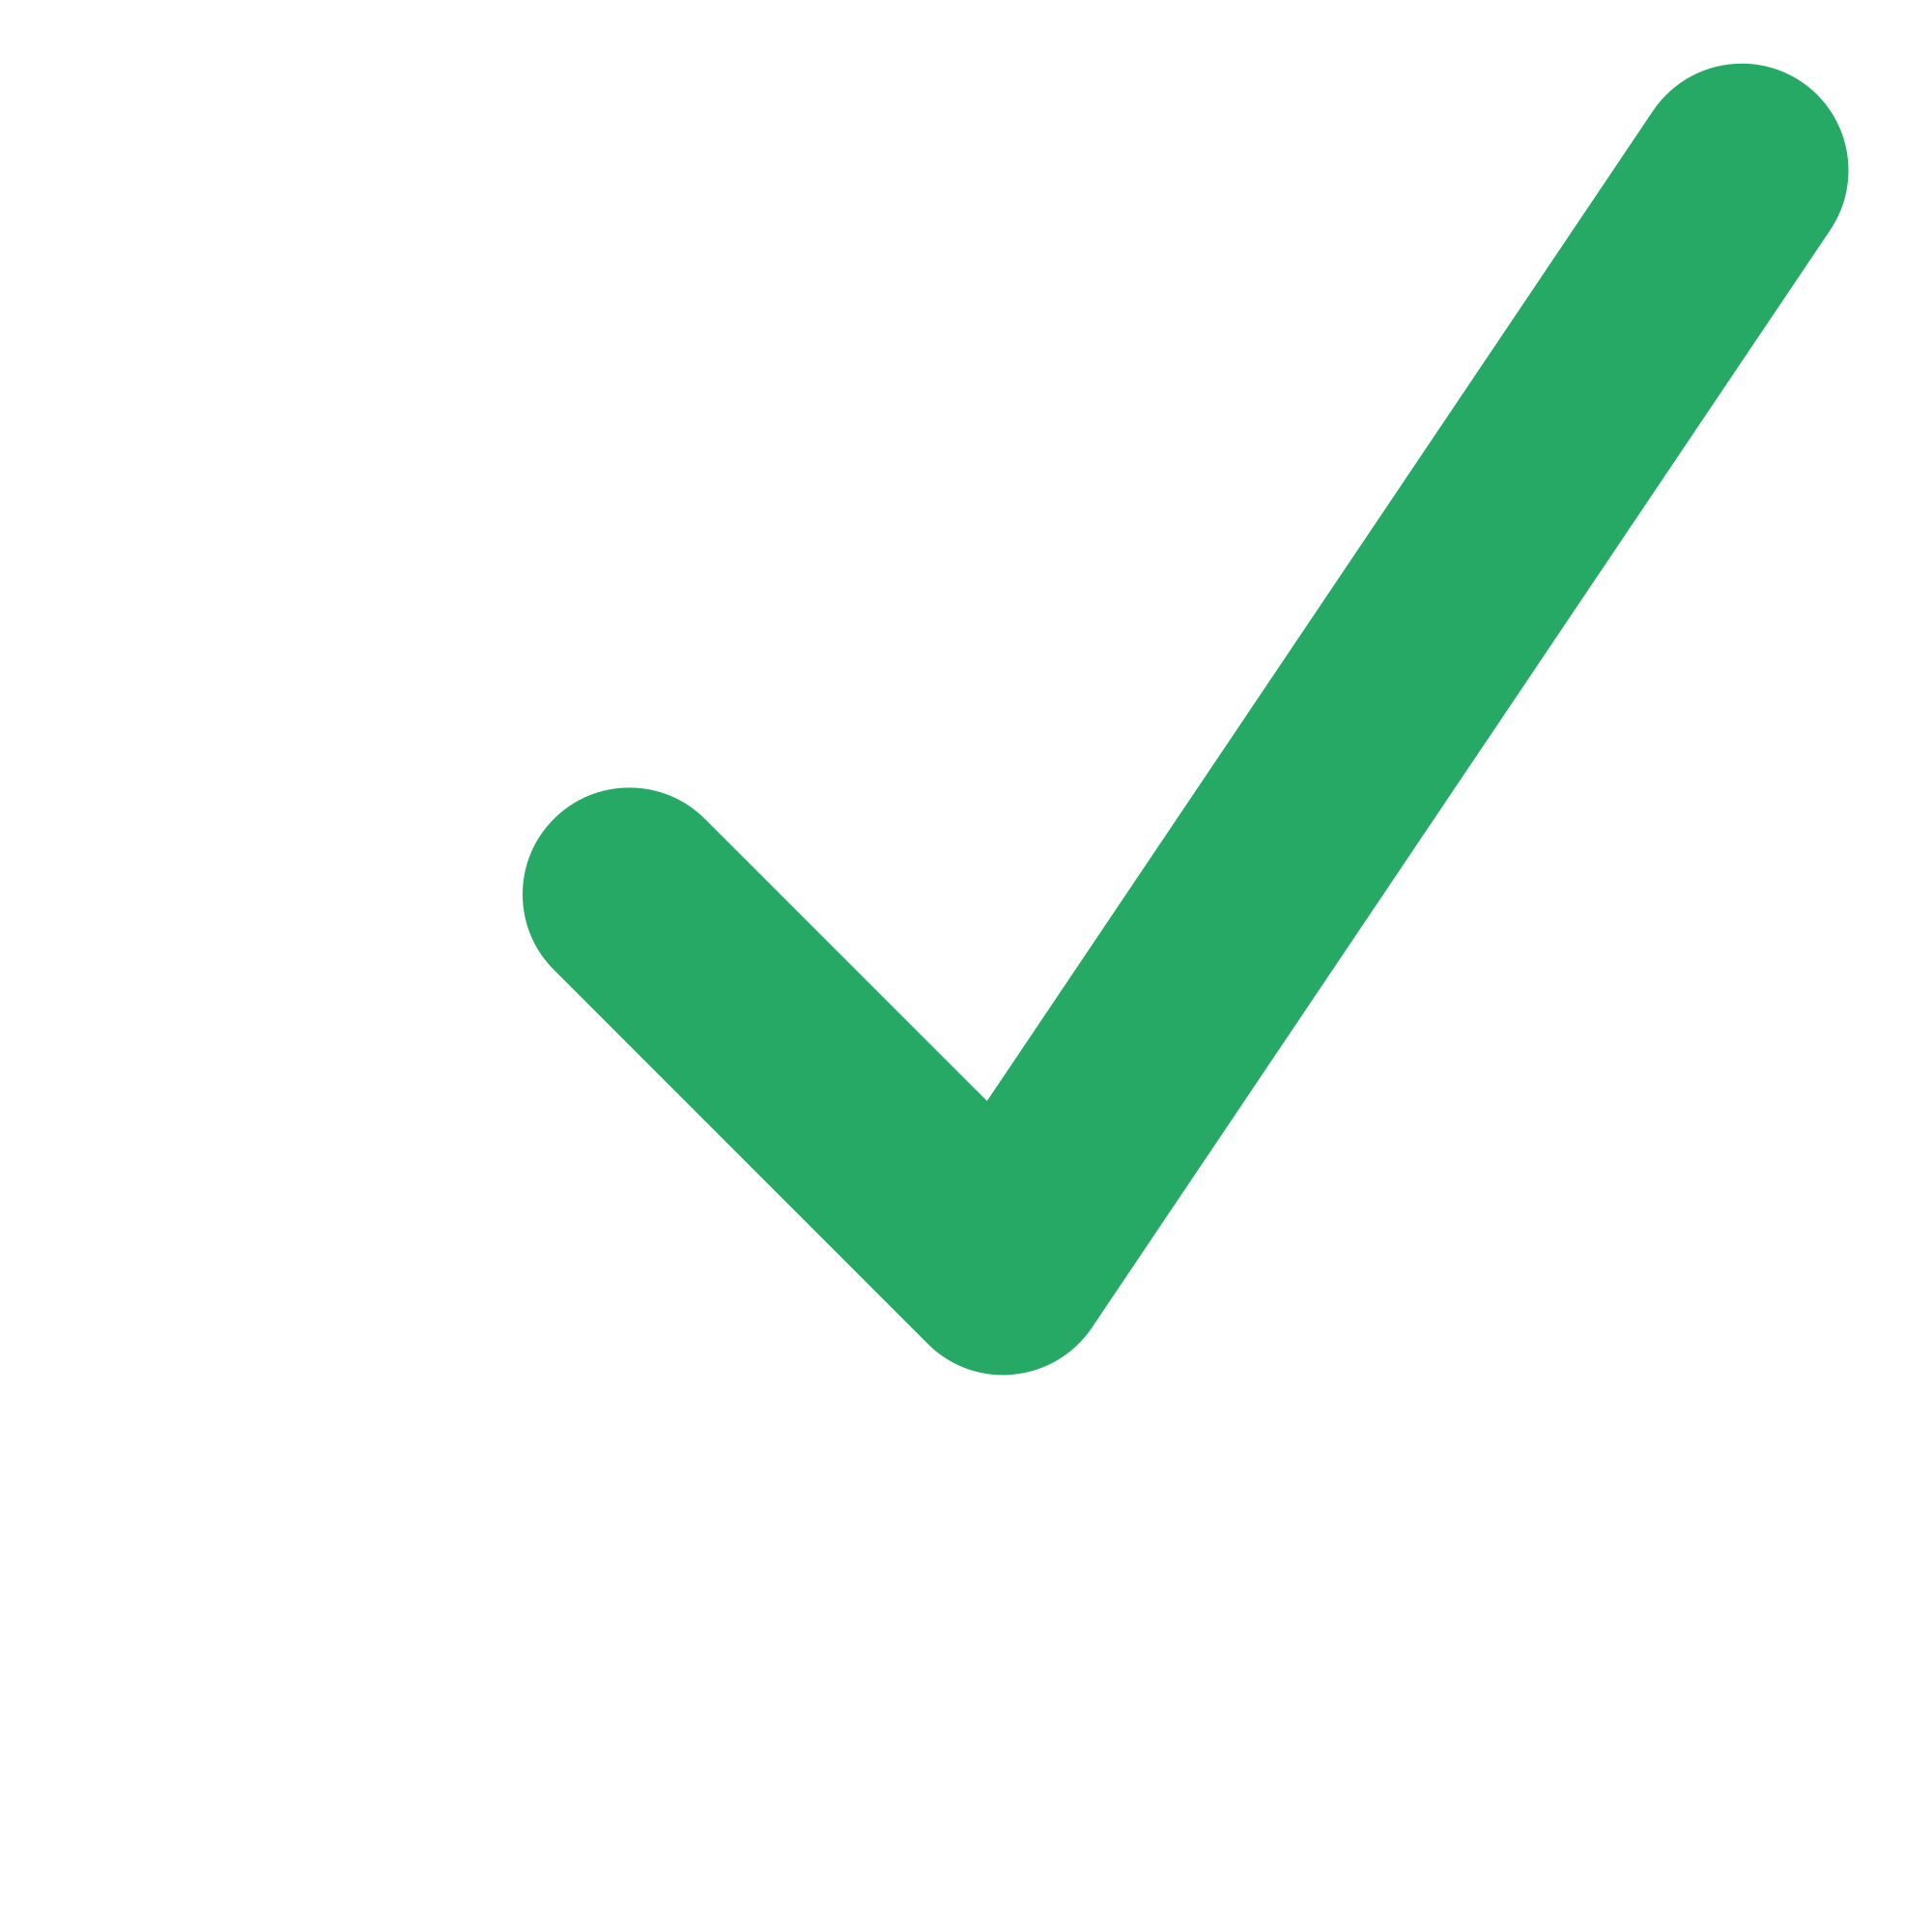 Checkmark green png. File echo curation alt